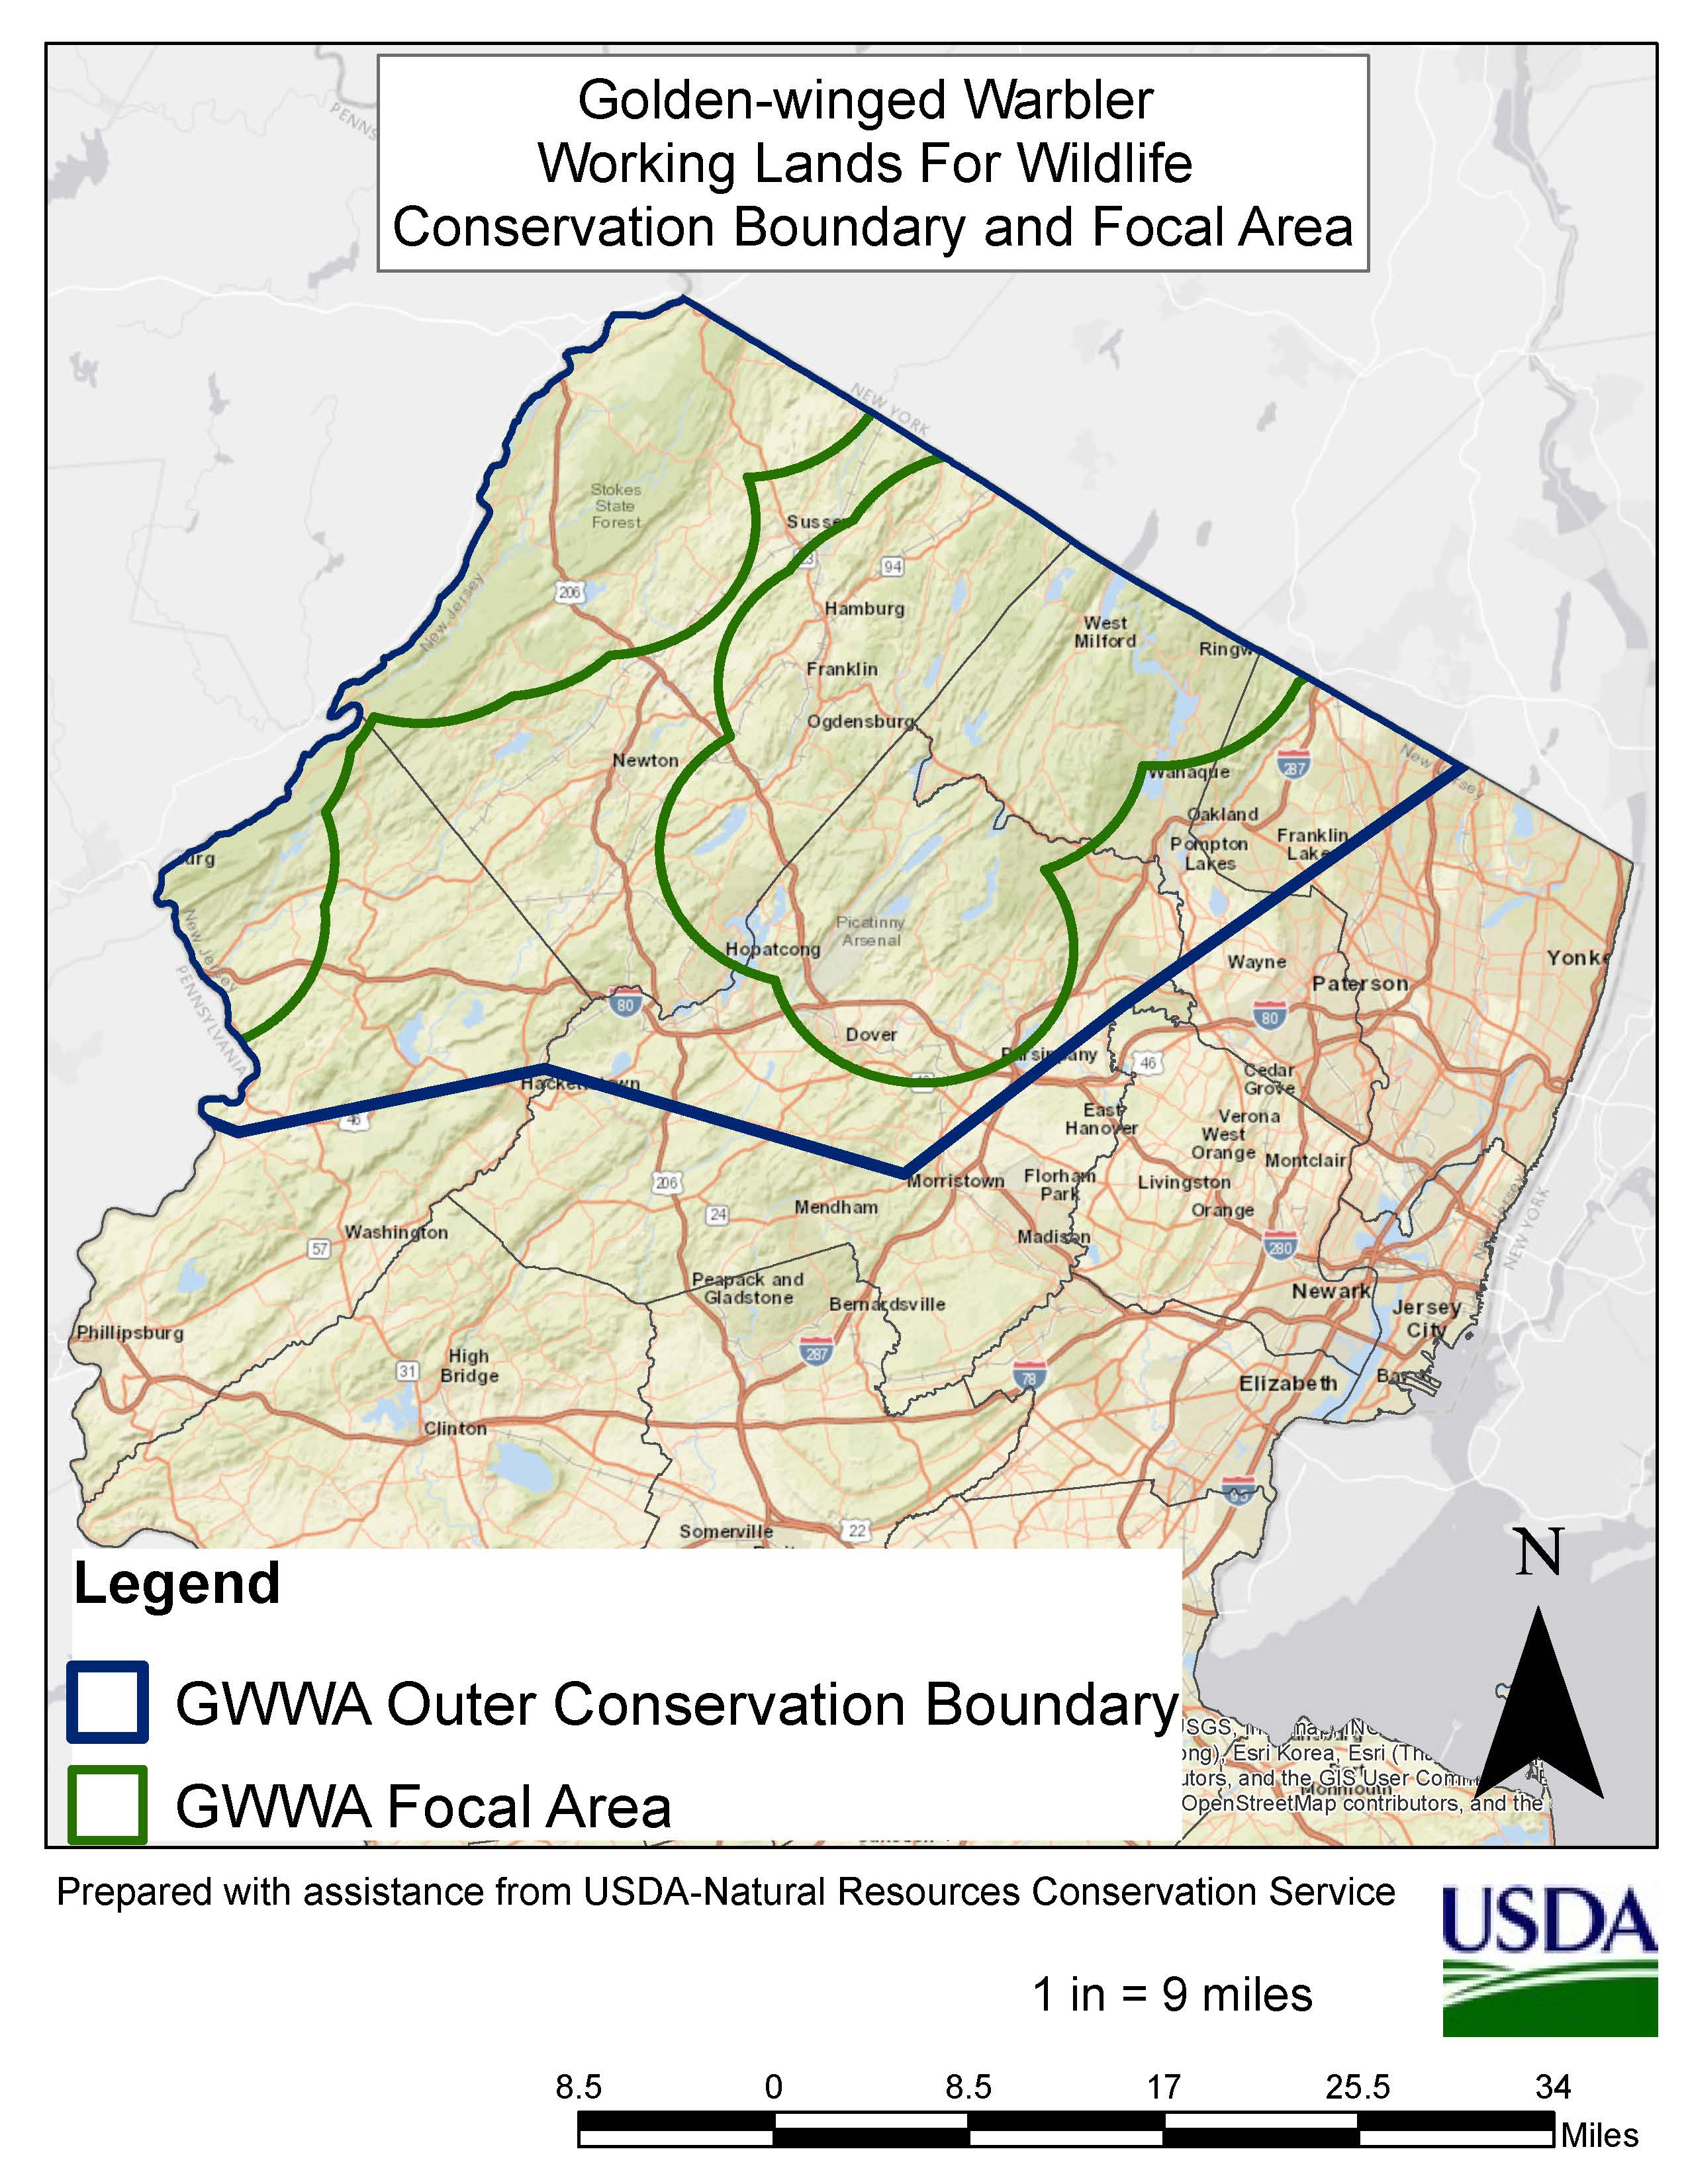 This map shows GWWA focal area in New Jersey.